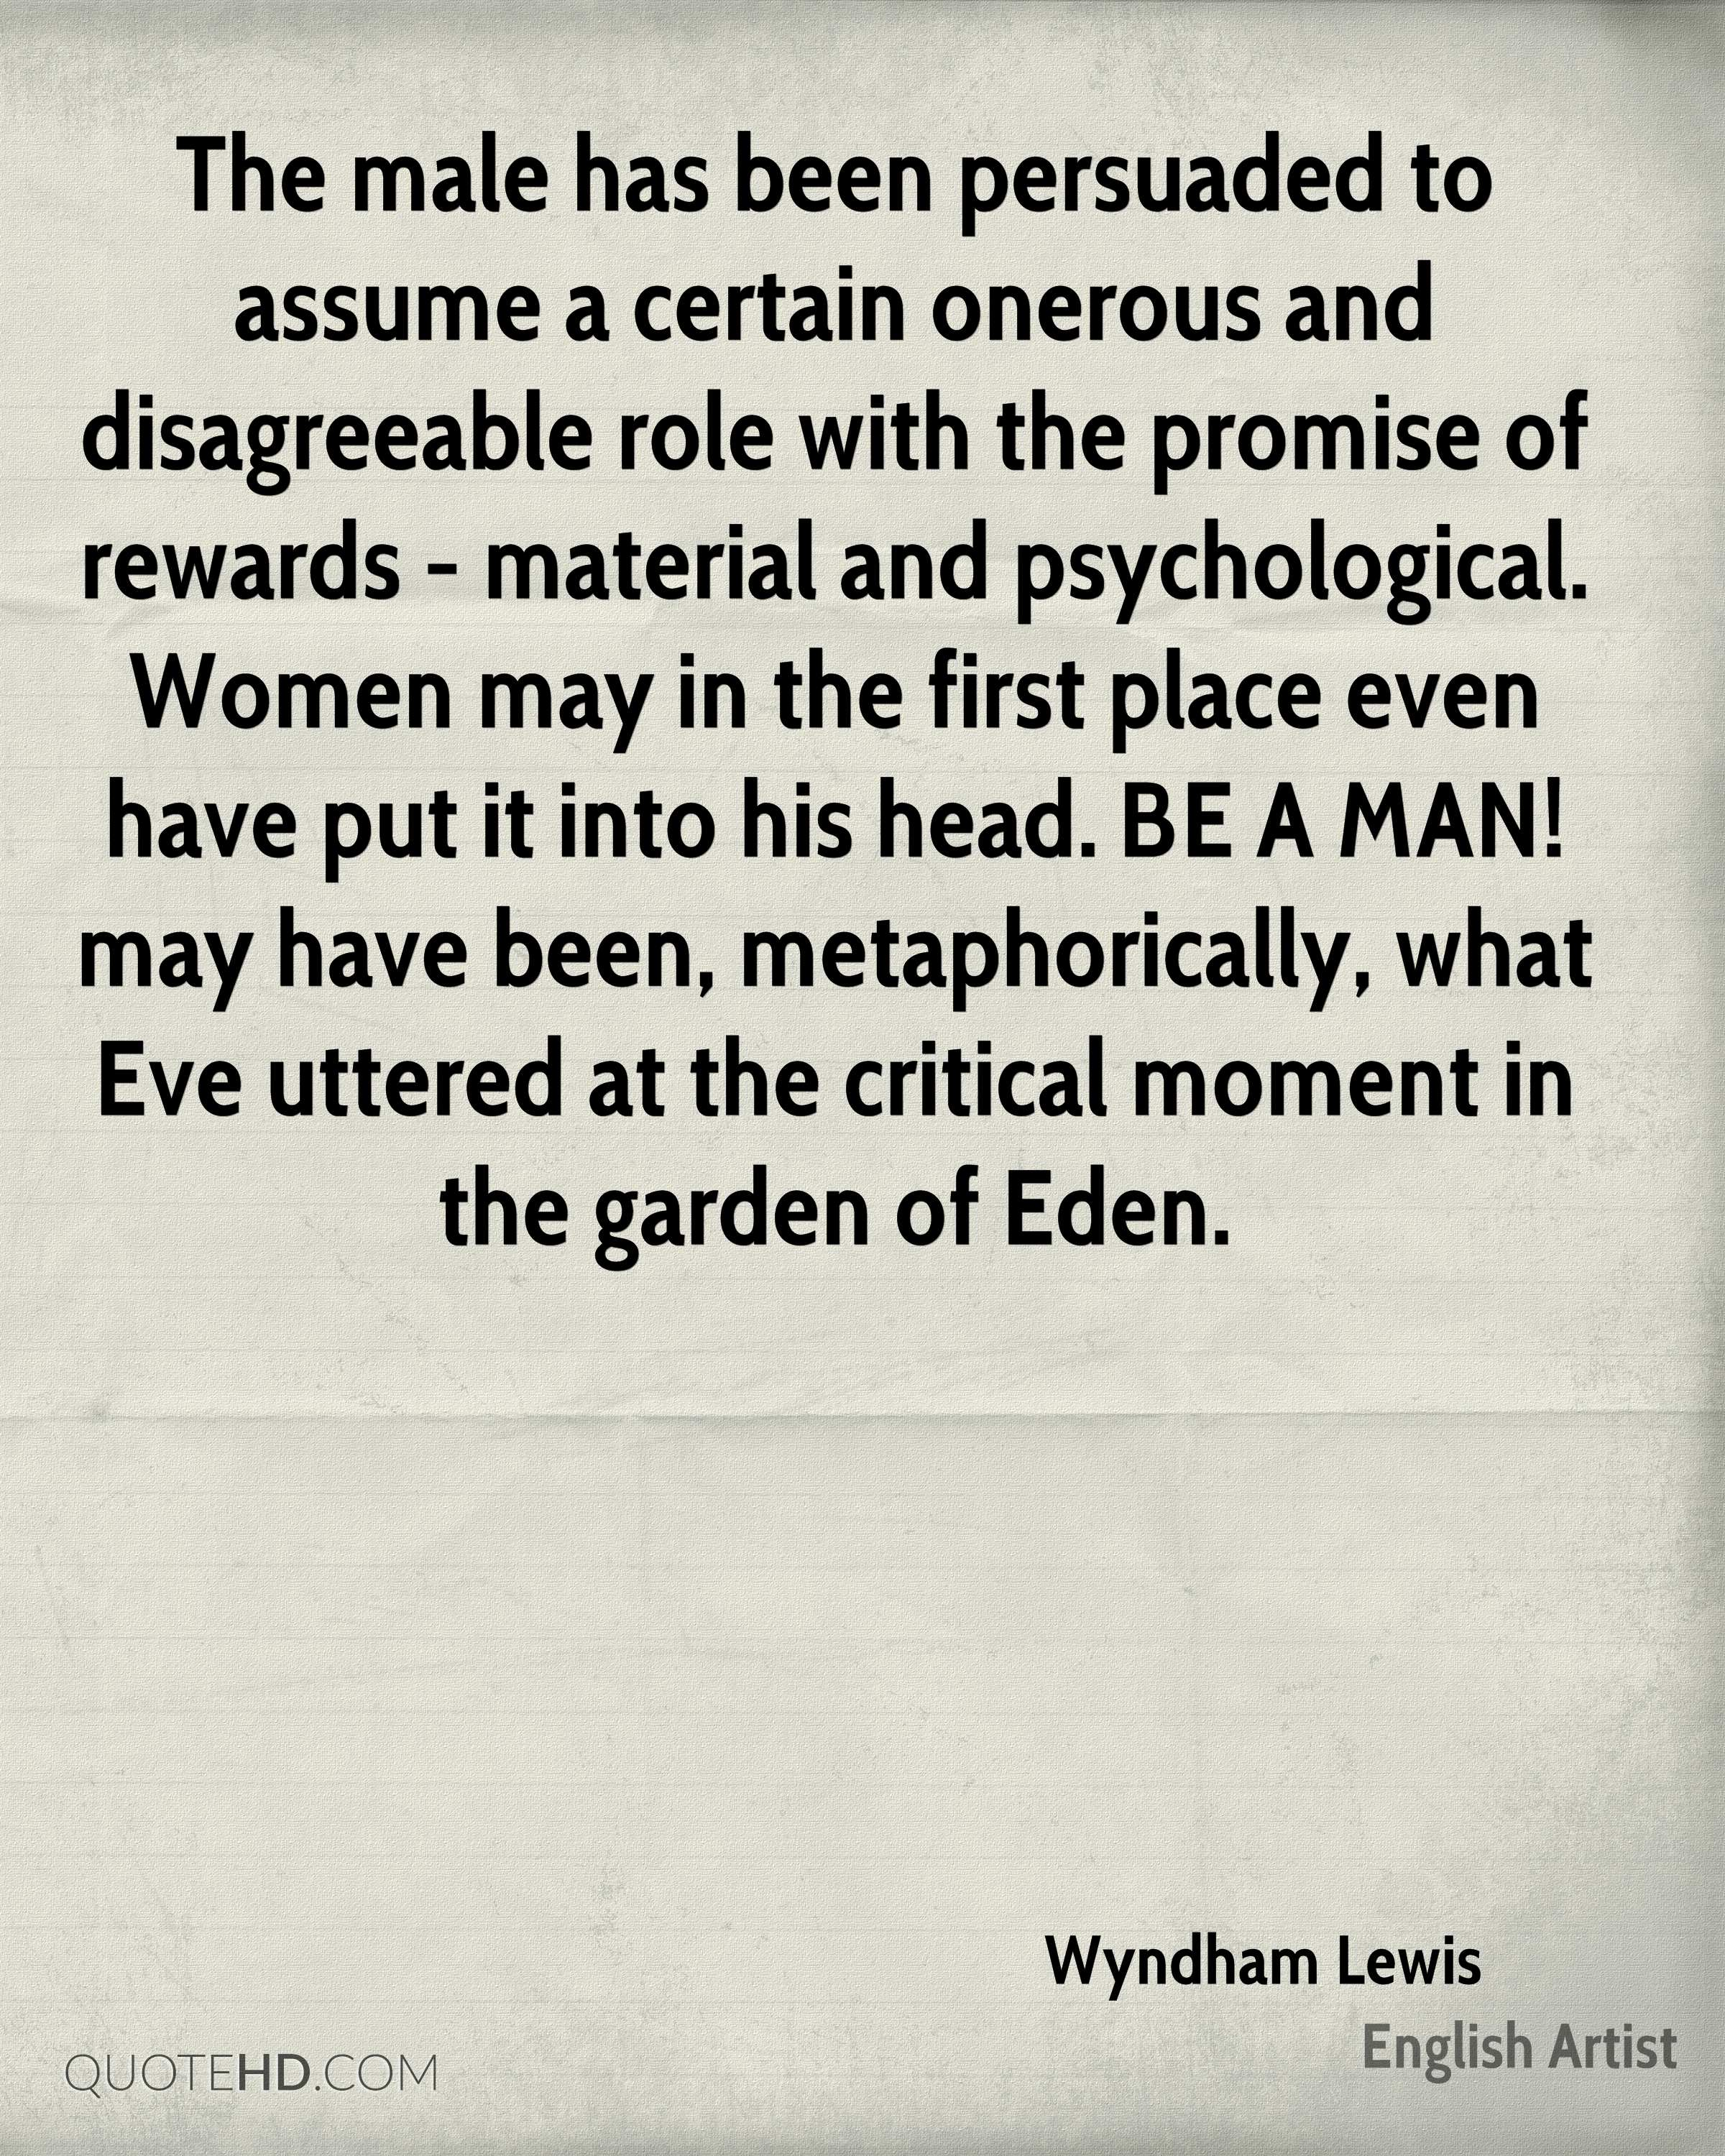 The male has been persuaded to assume a certain onerous and disagreeable role with the promise of rewards - material and psychological. Women may in the first place even have put it into his head. BE A MAN! may have been, metaphorically, what Eve uttered at the critical moment in the garden of Eden.